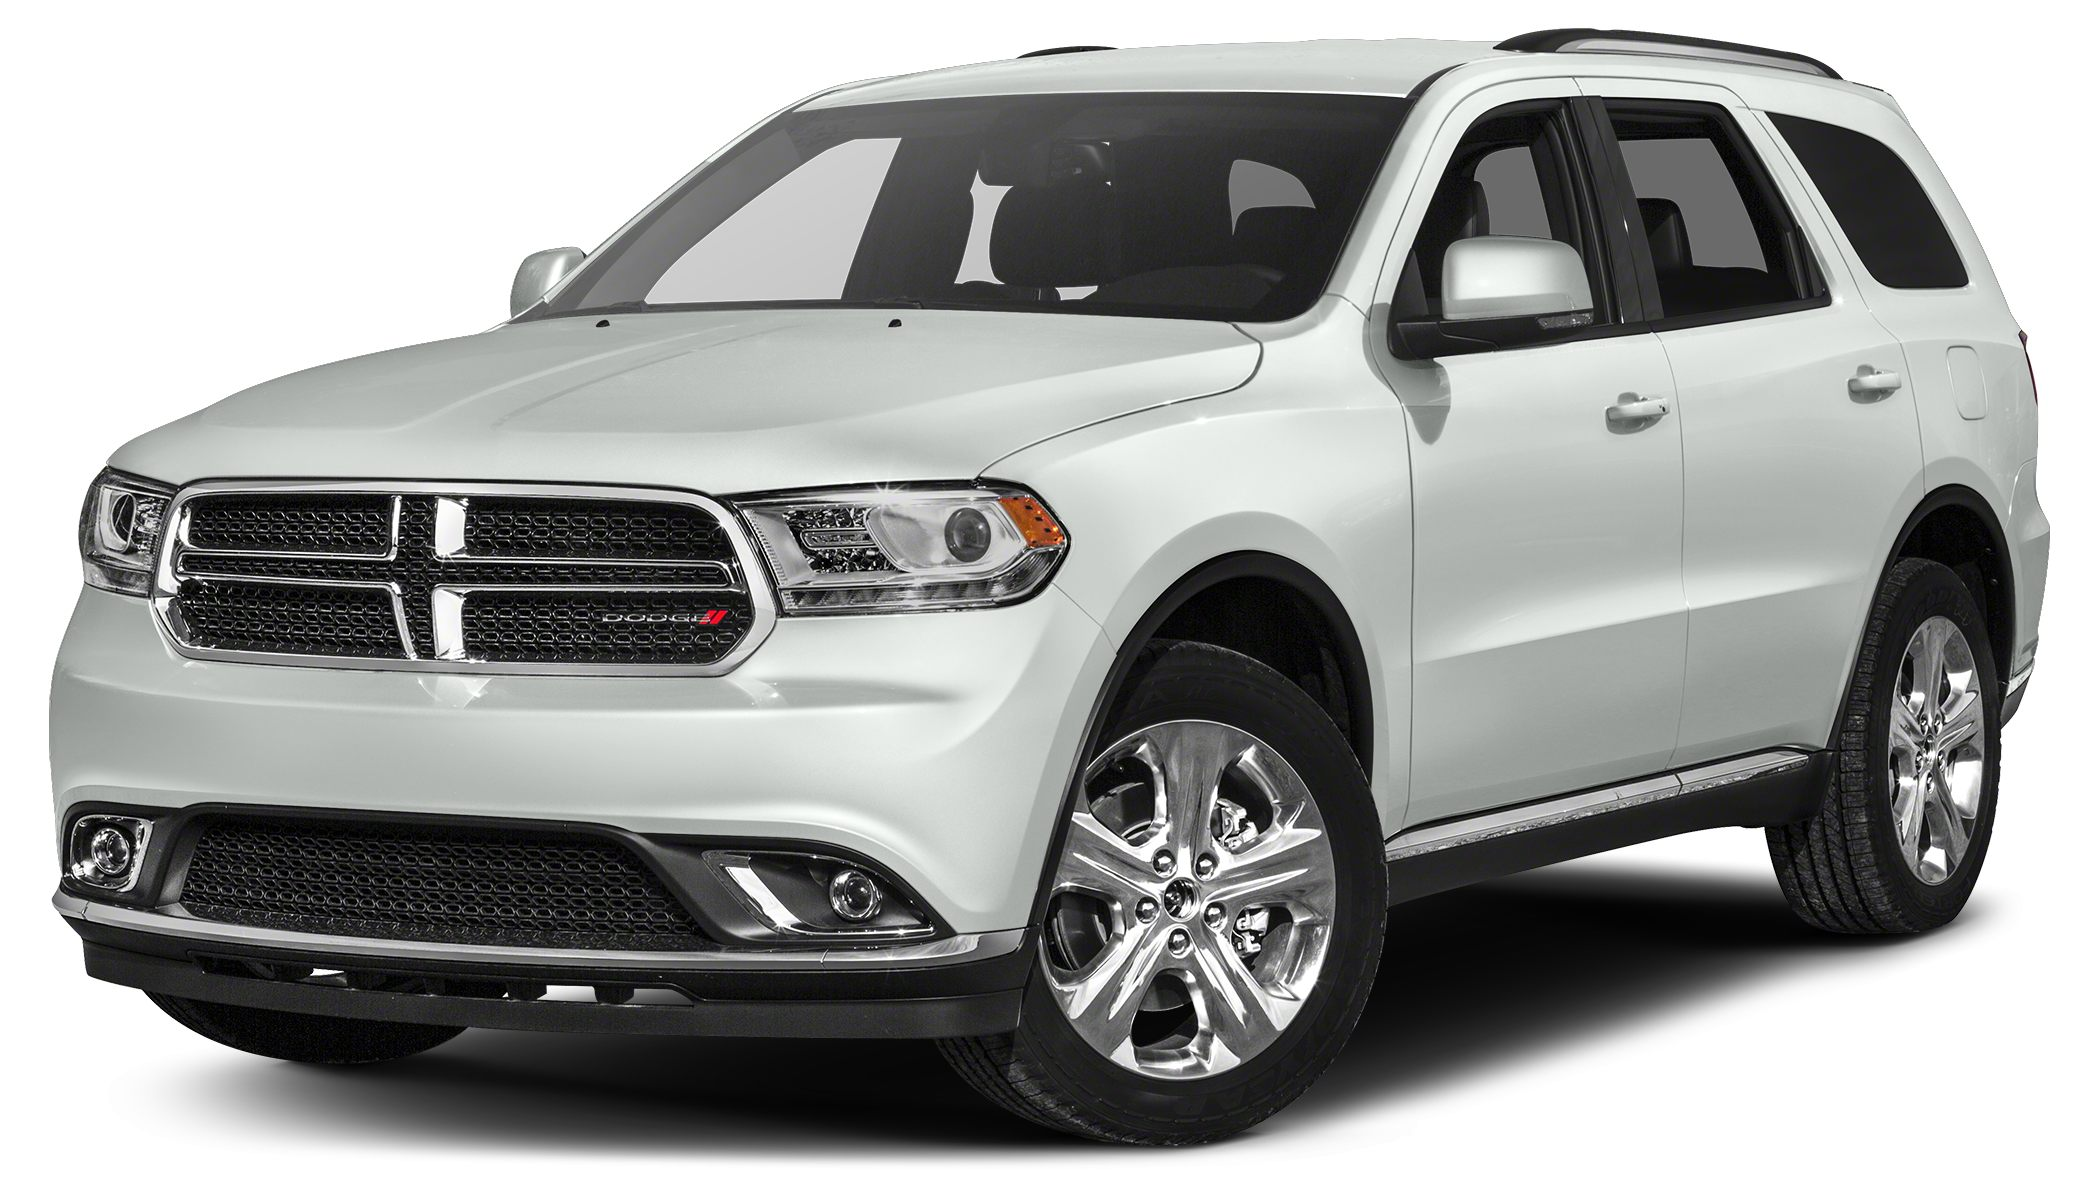 2015 Dodge Durango Limited Miles 0Color Bright White Clearcoat Stock 15D532 VIN 1C4RDHDG3FC9